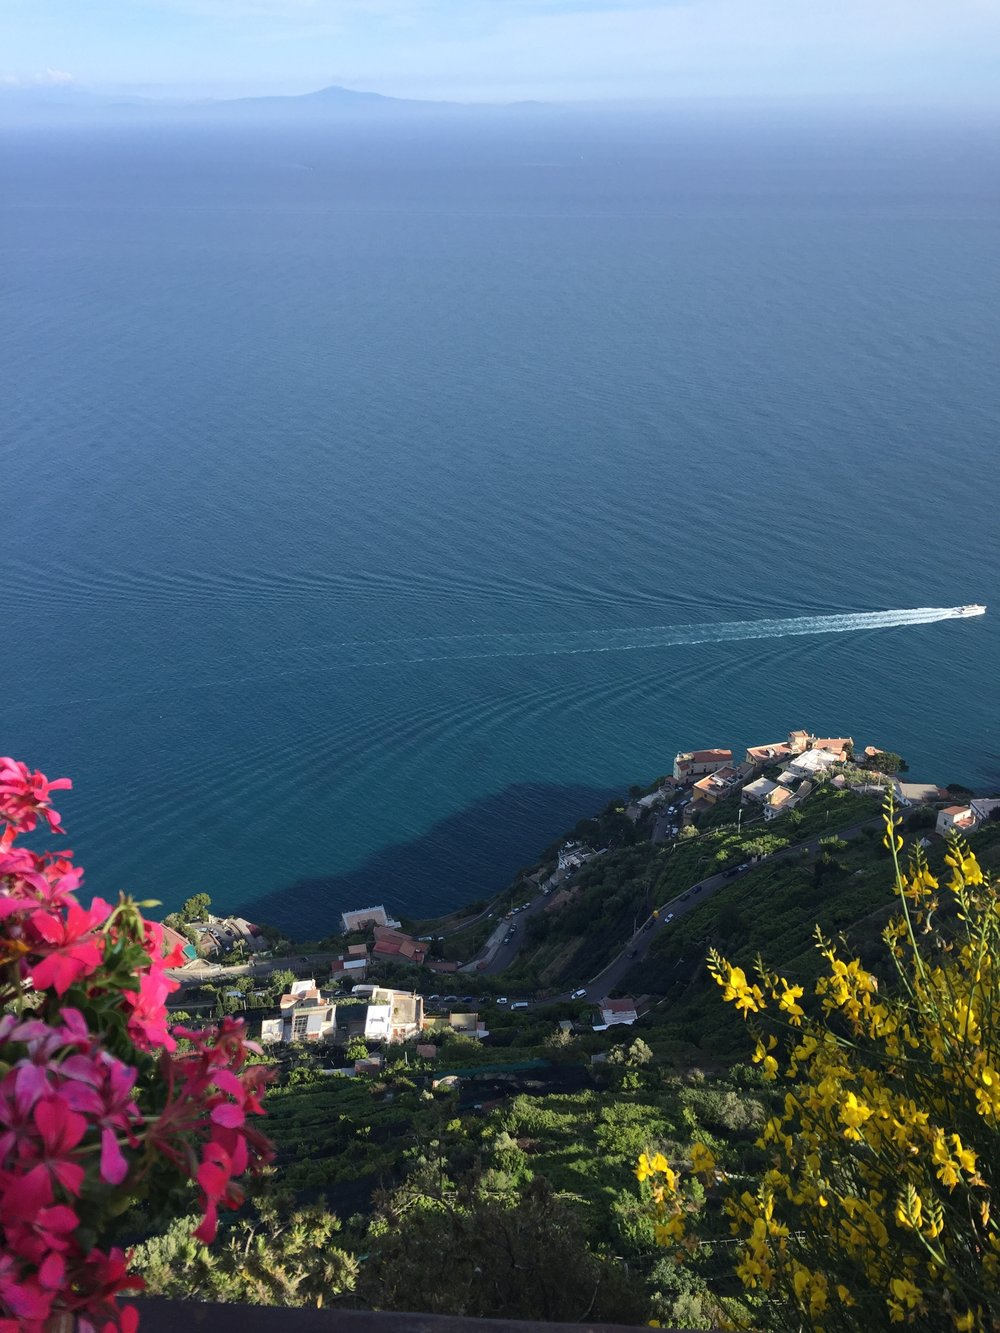 Boats skimming the Positano coast EAT.PRAY.MOVE Yoga Retreats | Amalfi Coast, Italy